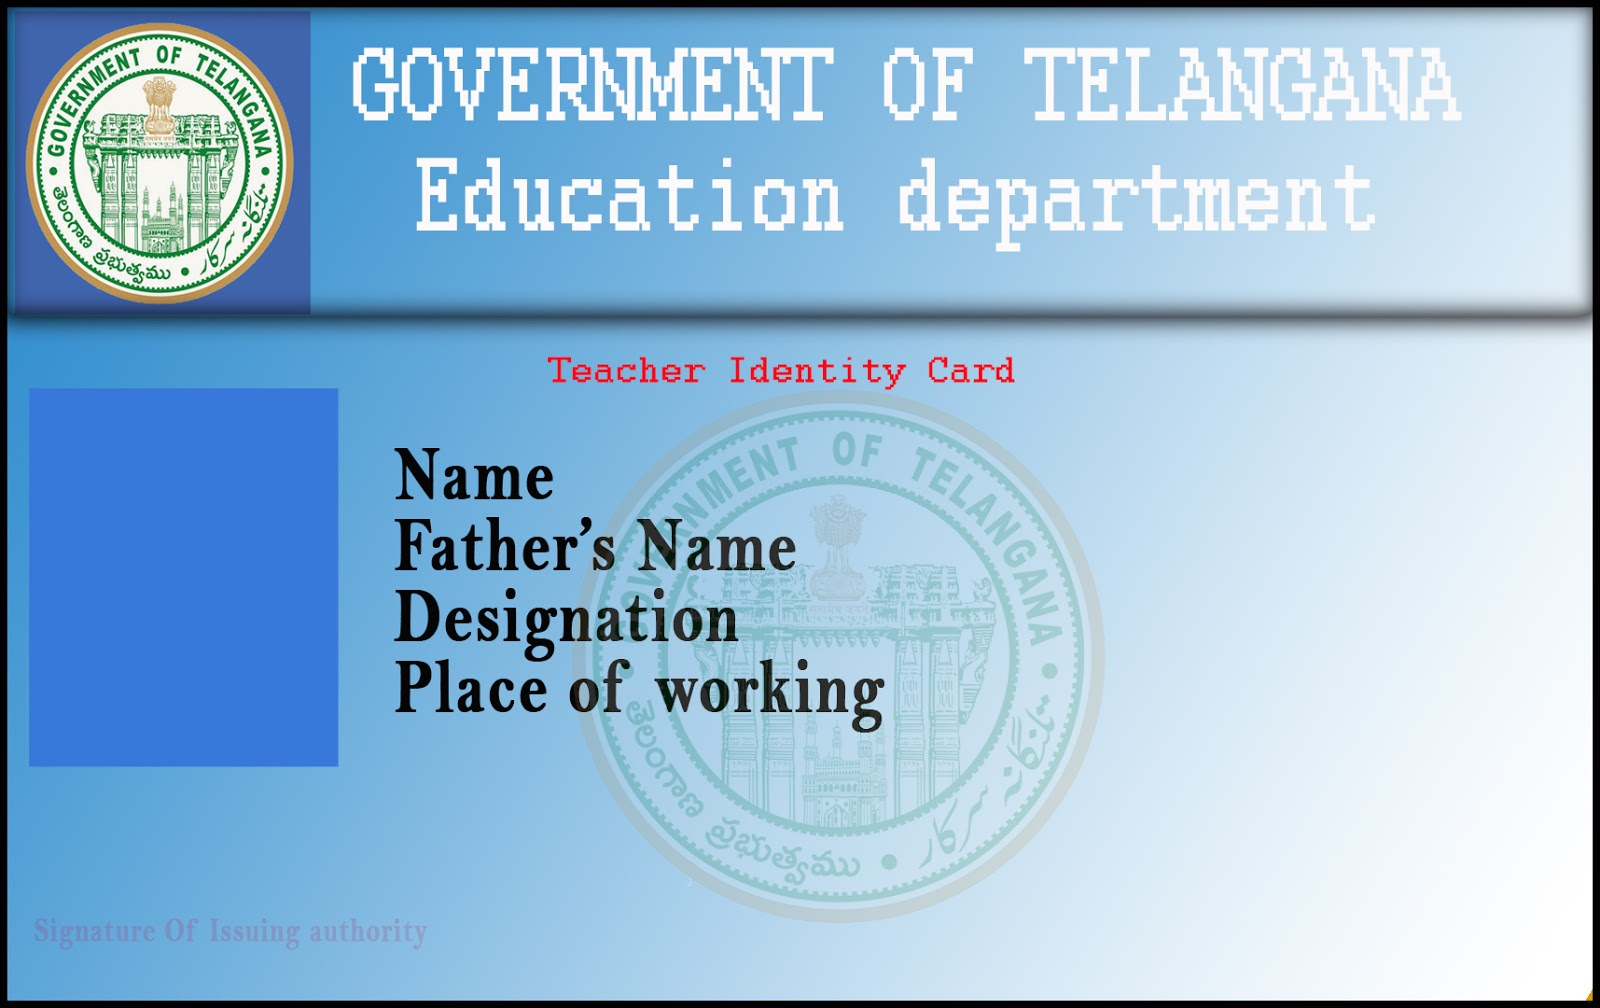 medium resolution of at final print out those edited id card and make it authorised by employer